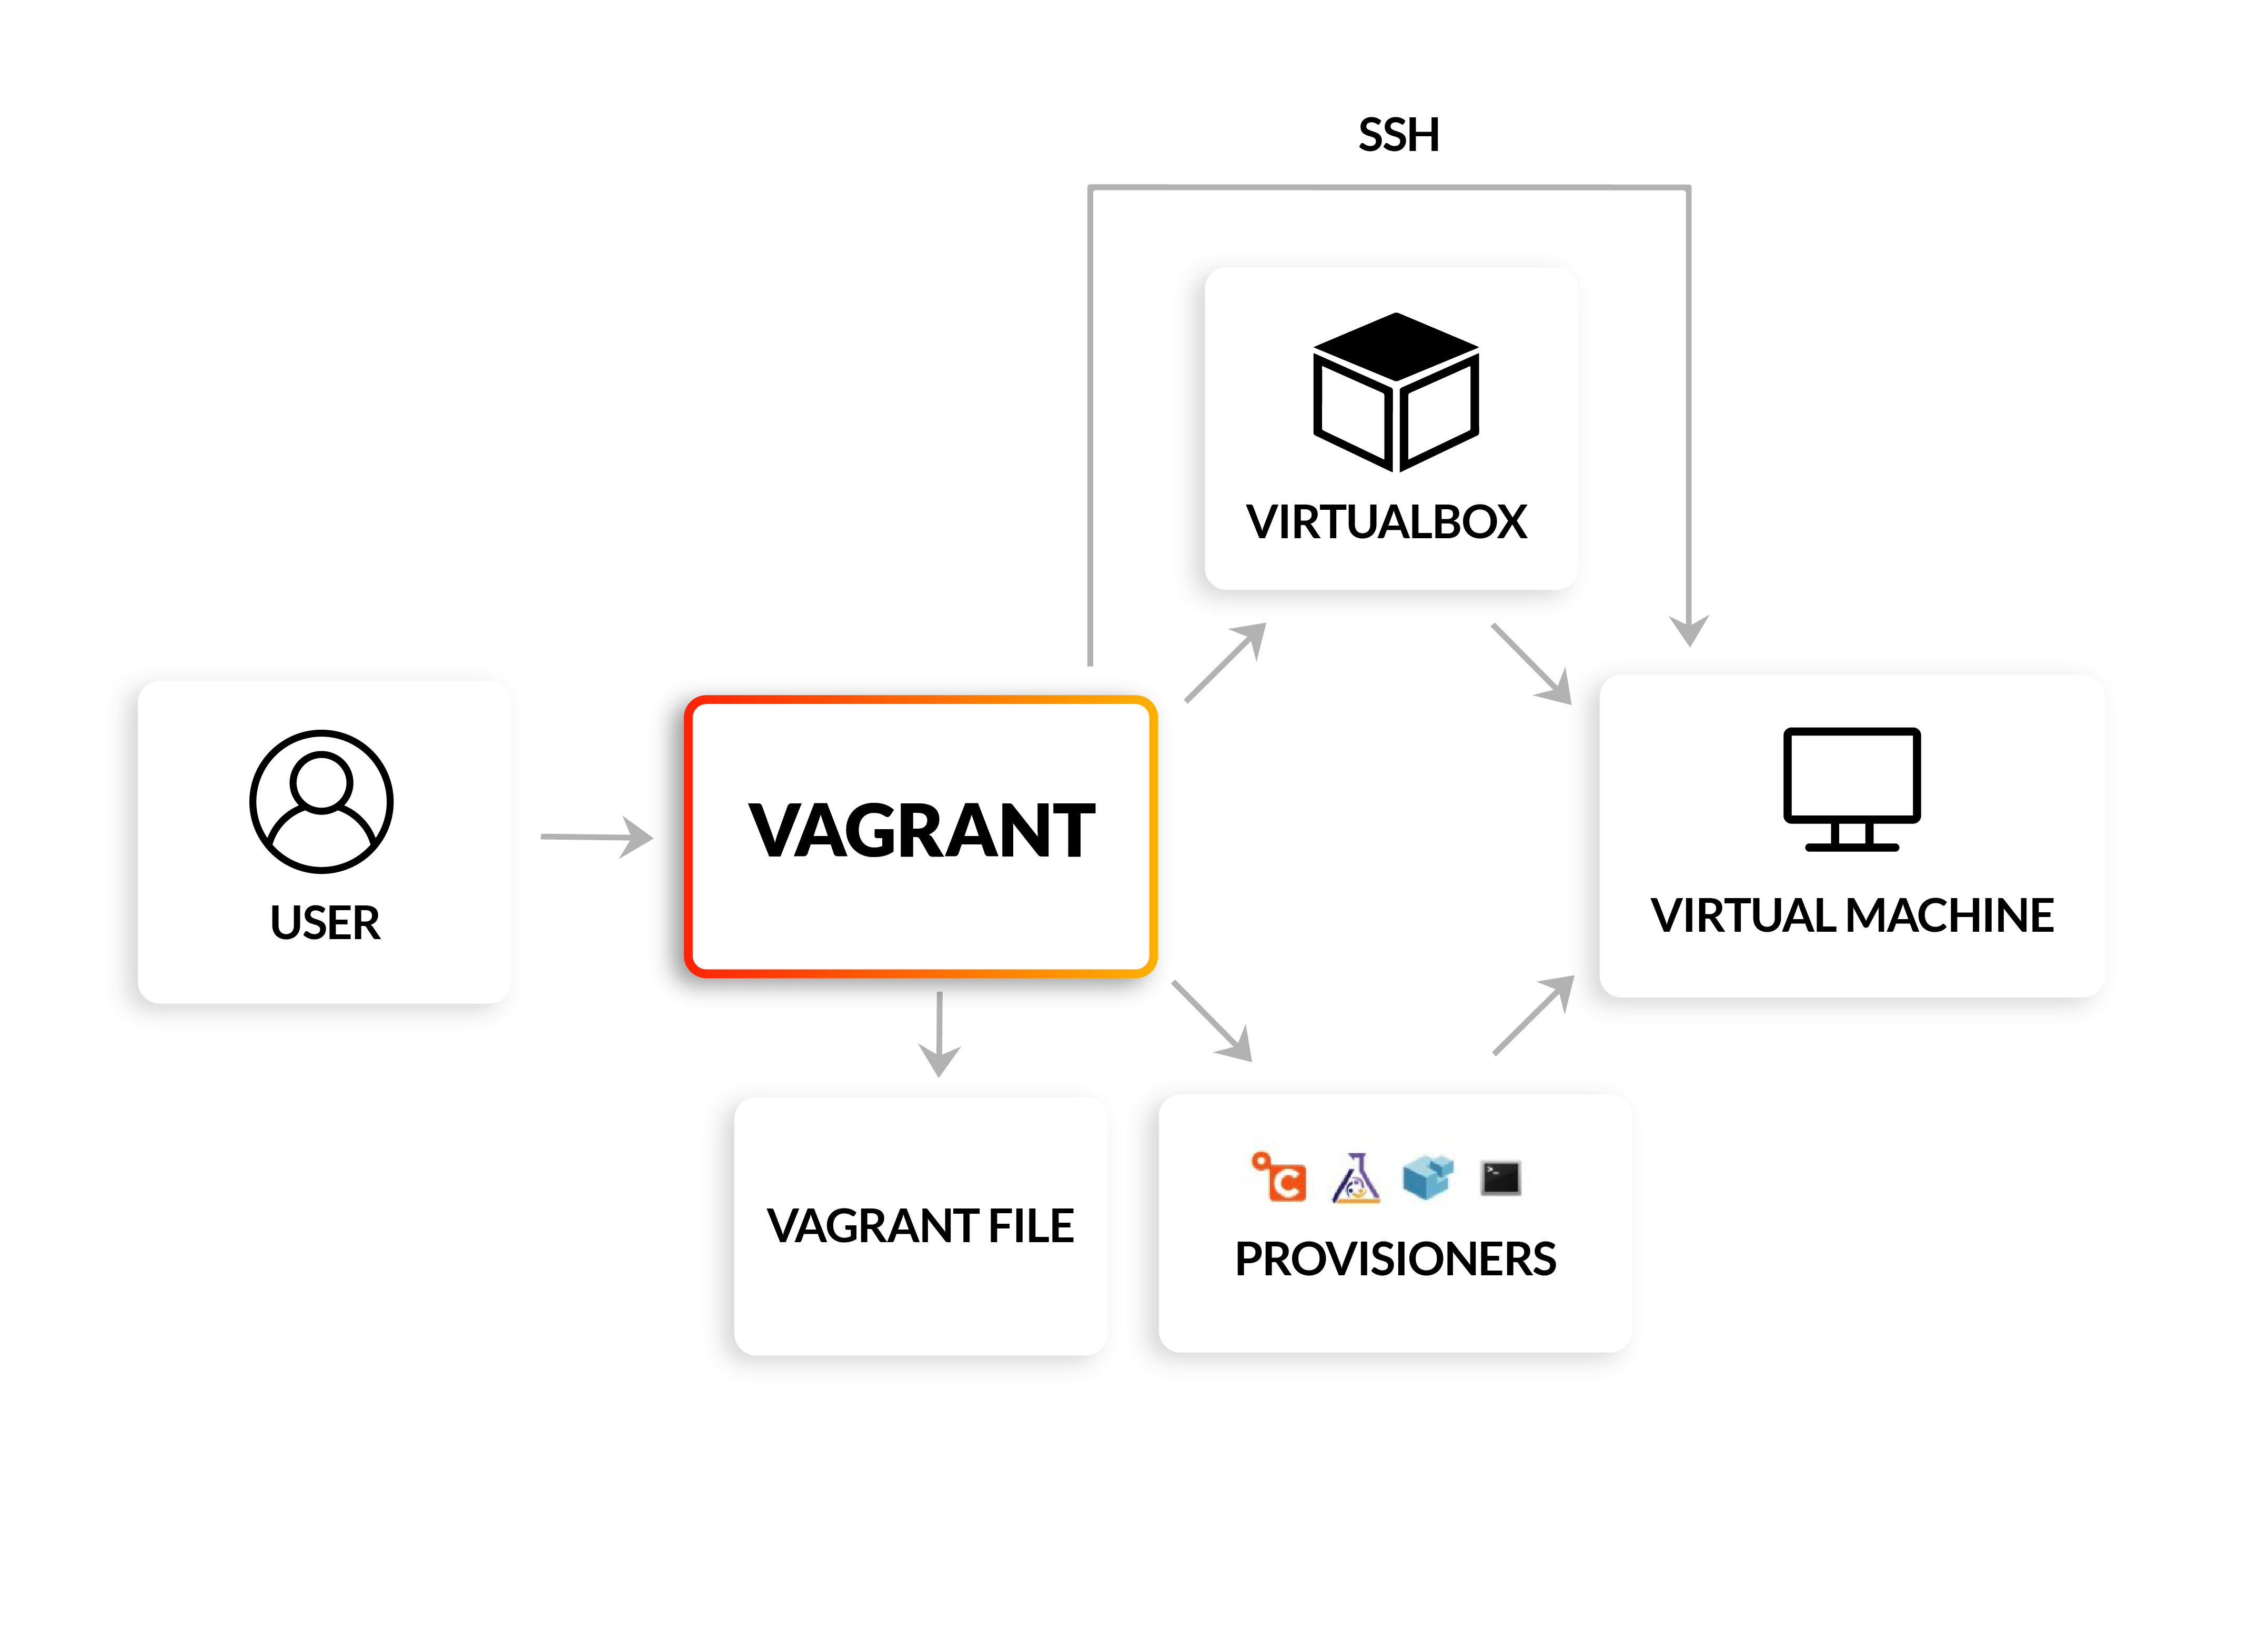 Vagrant architecture